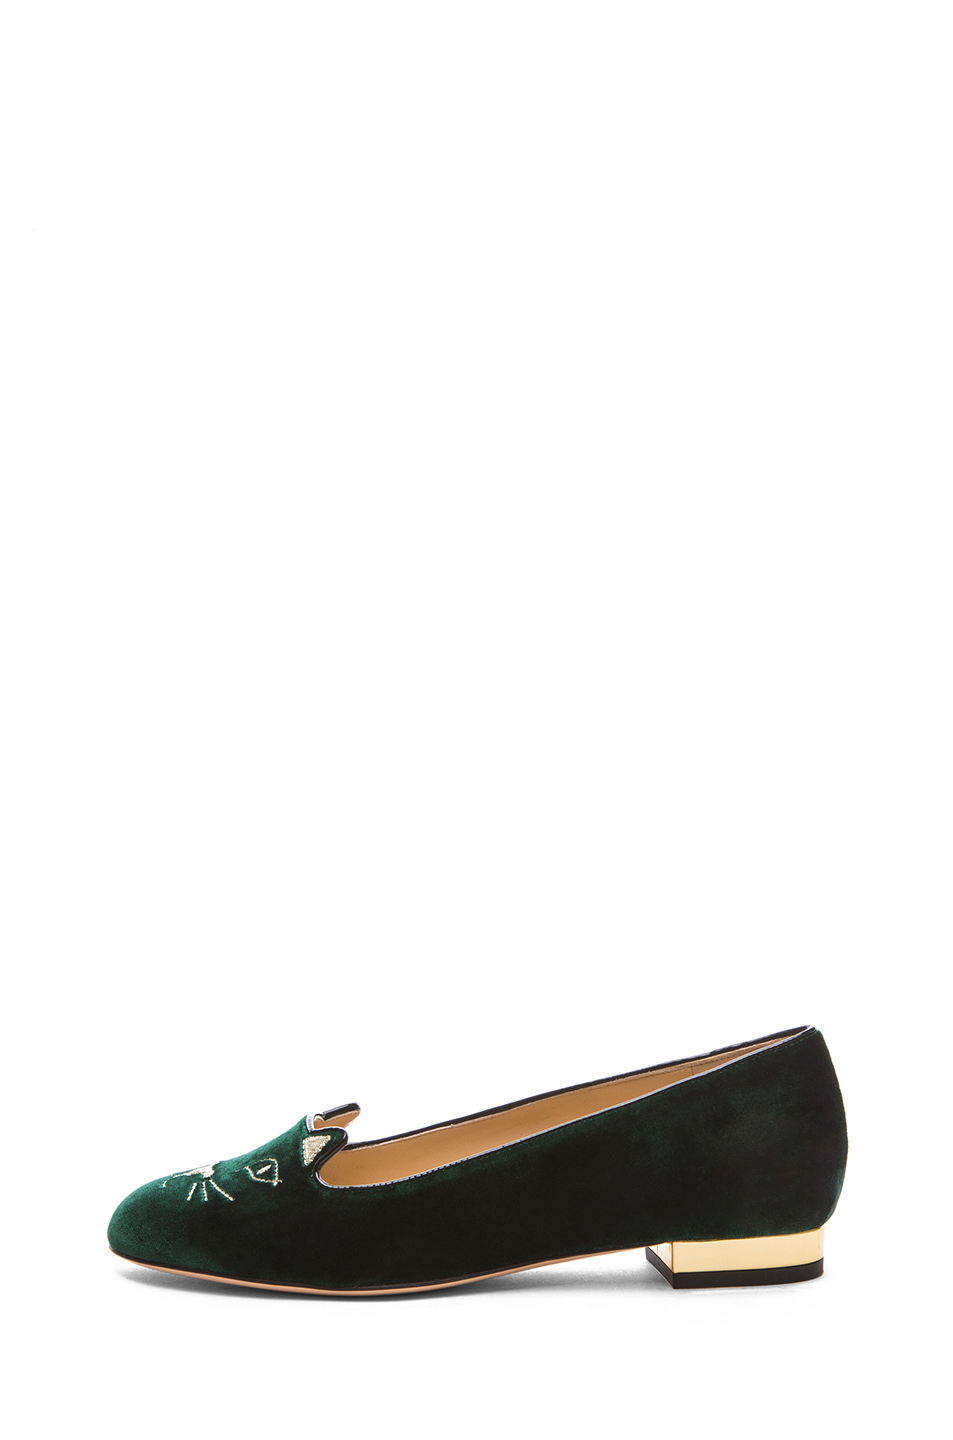 Charlotte Olympia | Kitty Flats in Green & Gold Suede